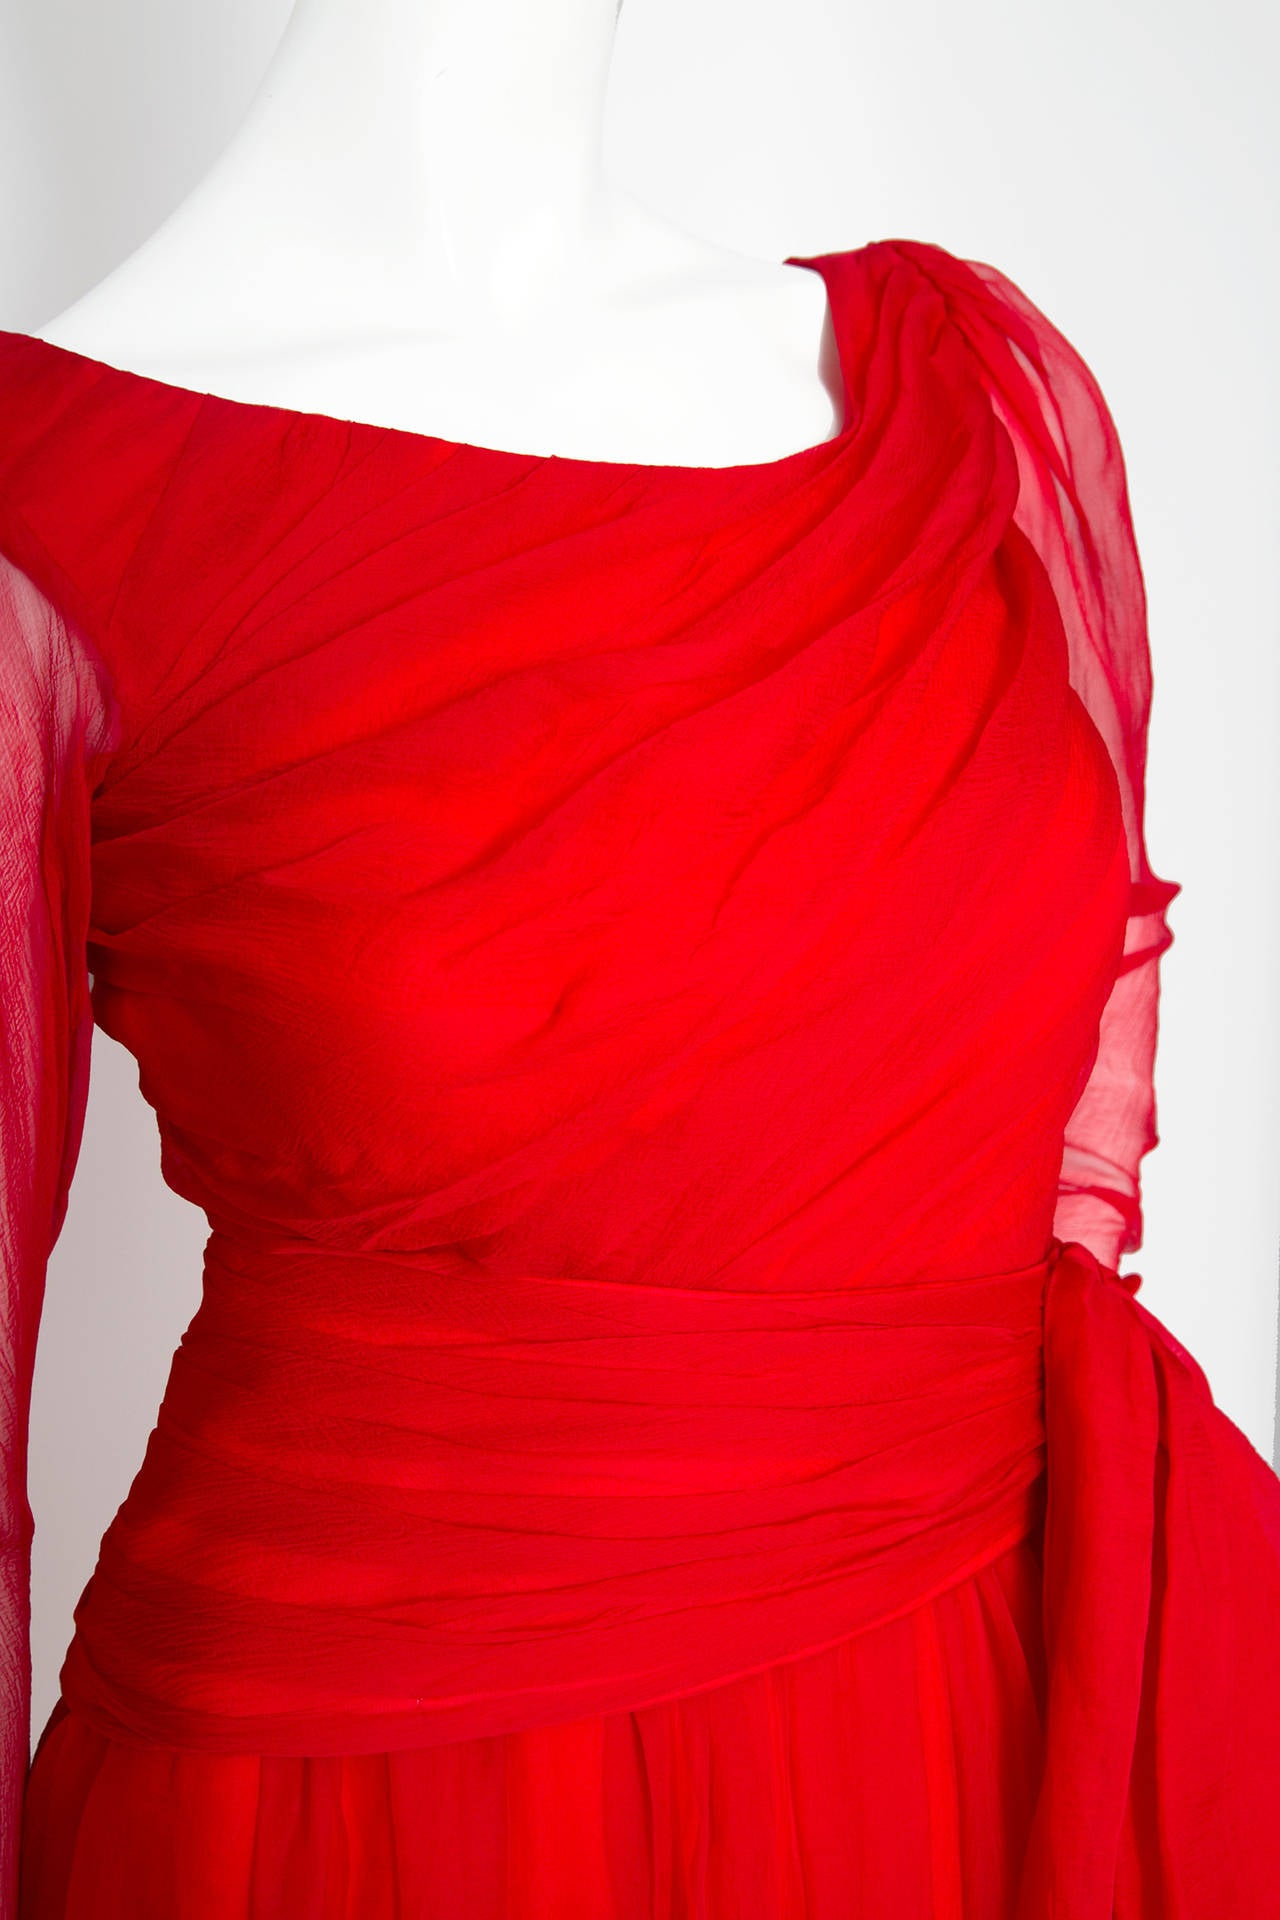 A Rare 1980s Yves Saint Laurent Haute Couture Silk Chiffon Dress For Sale 1